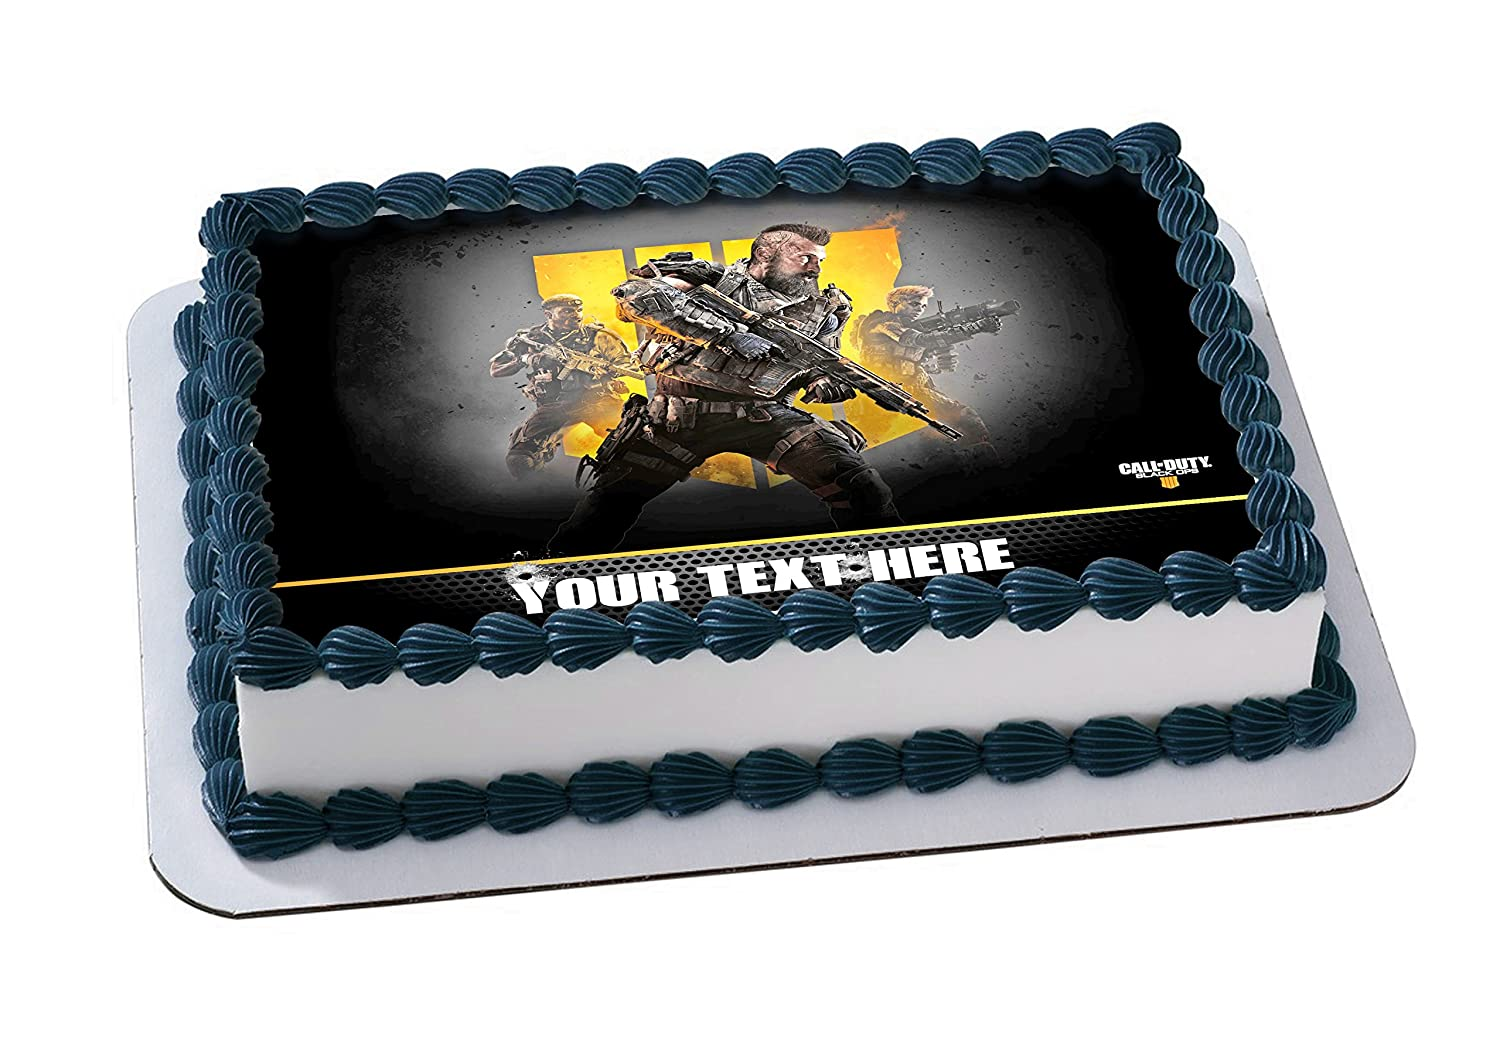 Call Of Duty Black Ops IV Edible Image Cake Topper Personalized Birthday 1 4 Sheet Decoration Custom Party Sugar Frosting Transfer Fondant